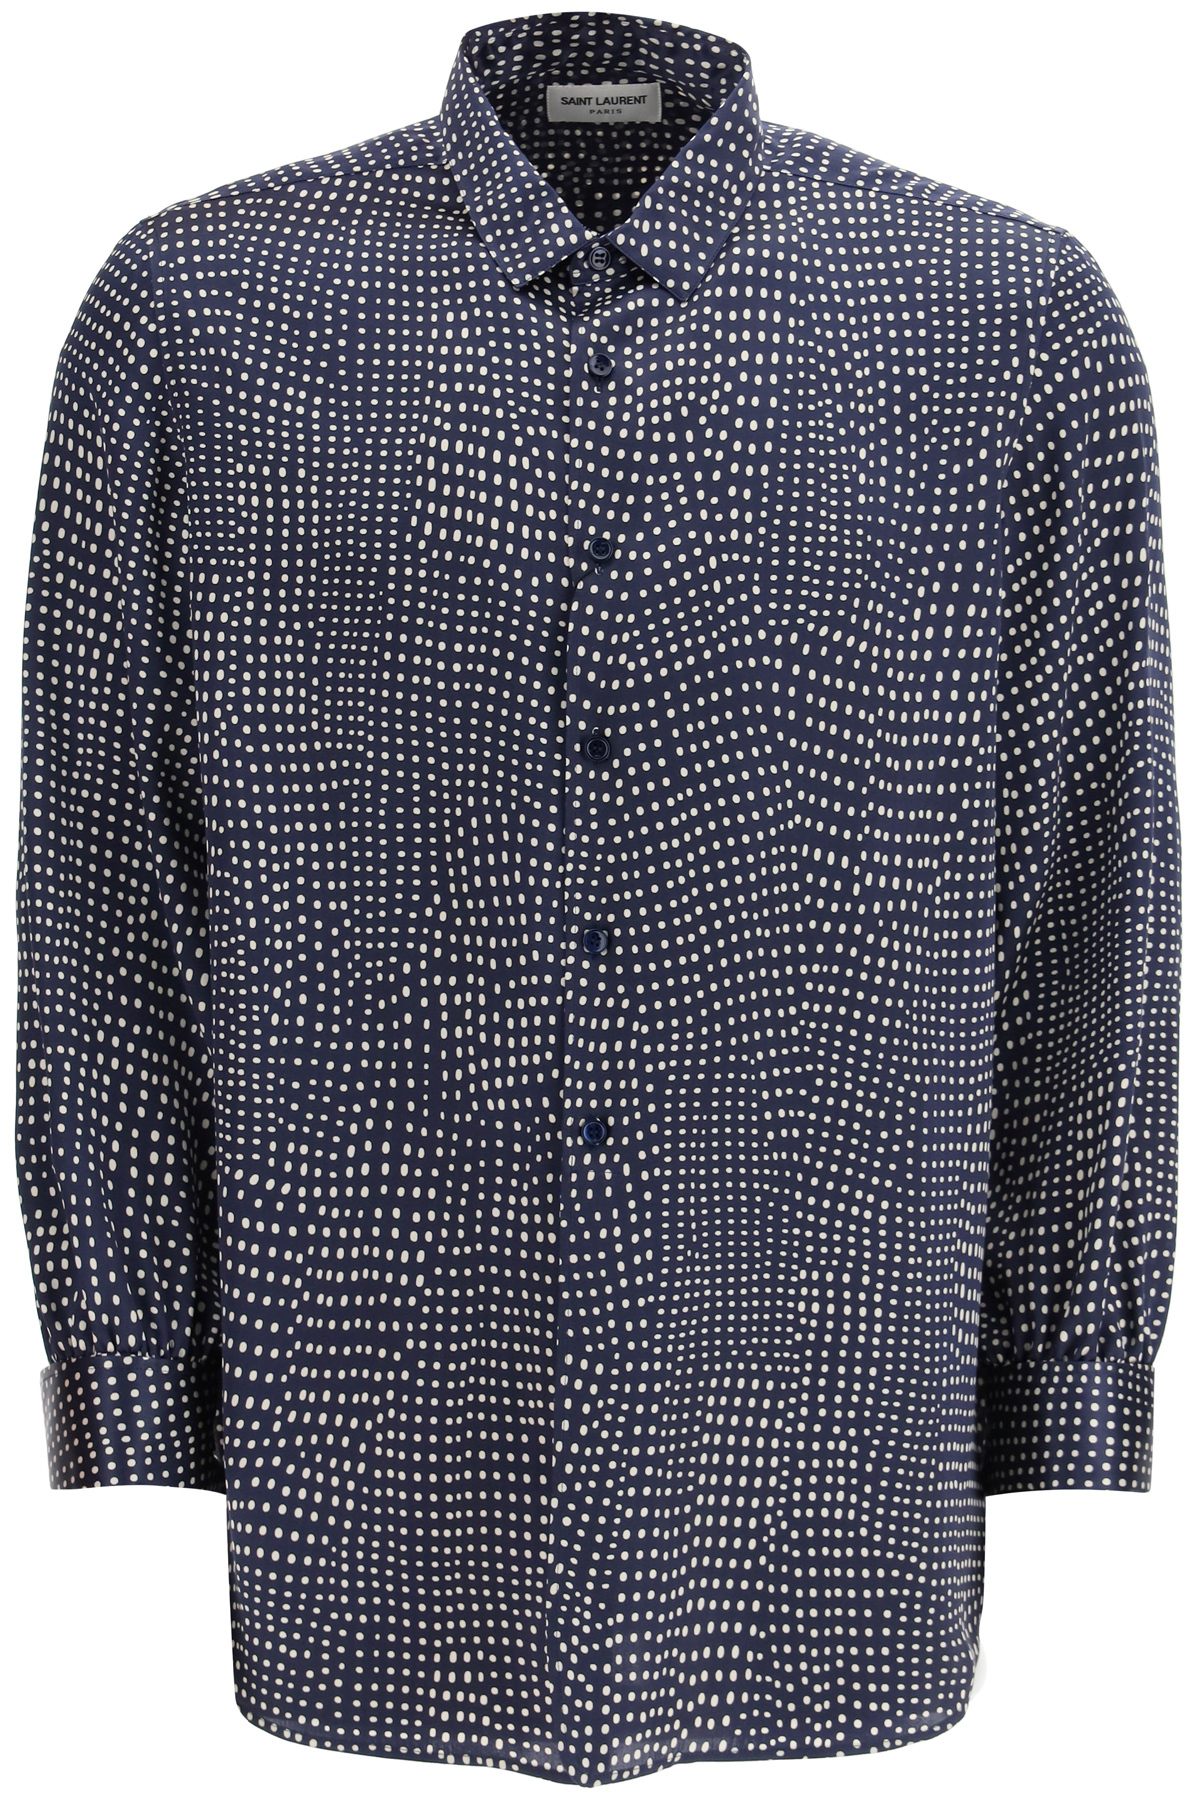 SAINT LAURENT POLKA DOT SILK SATIN SHIRT 40 Blue, White Silk